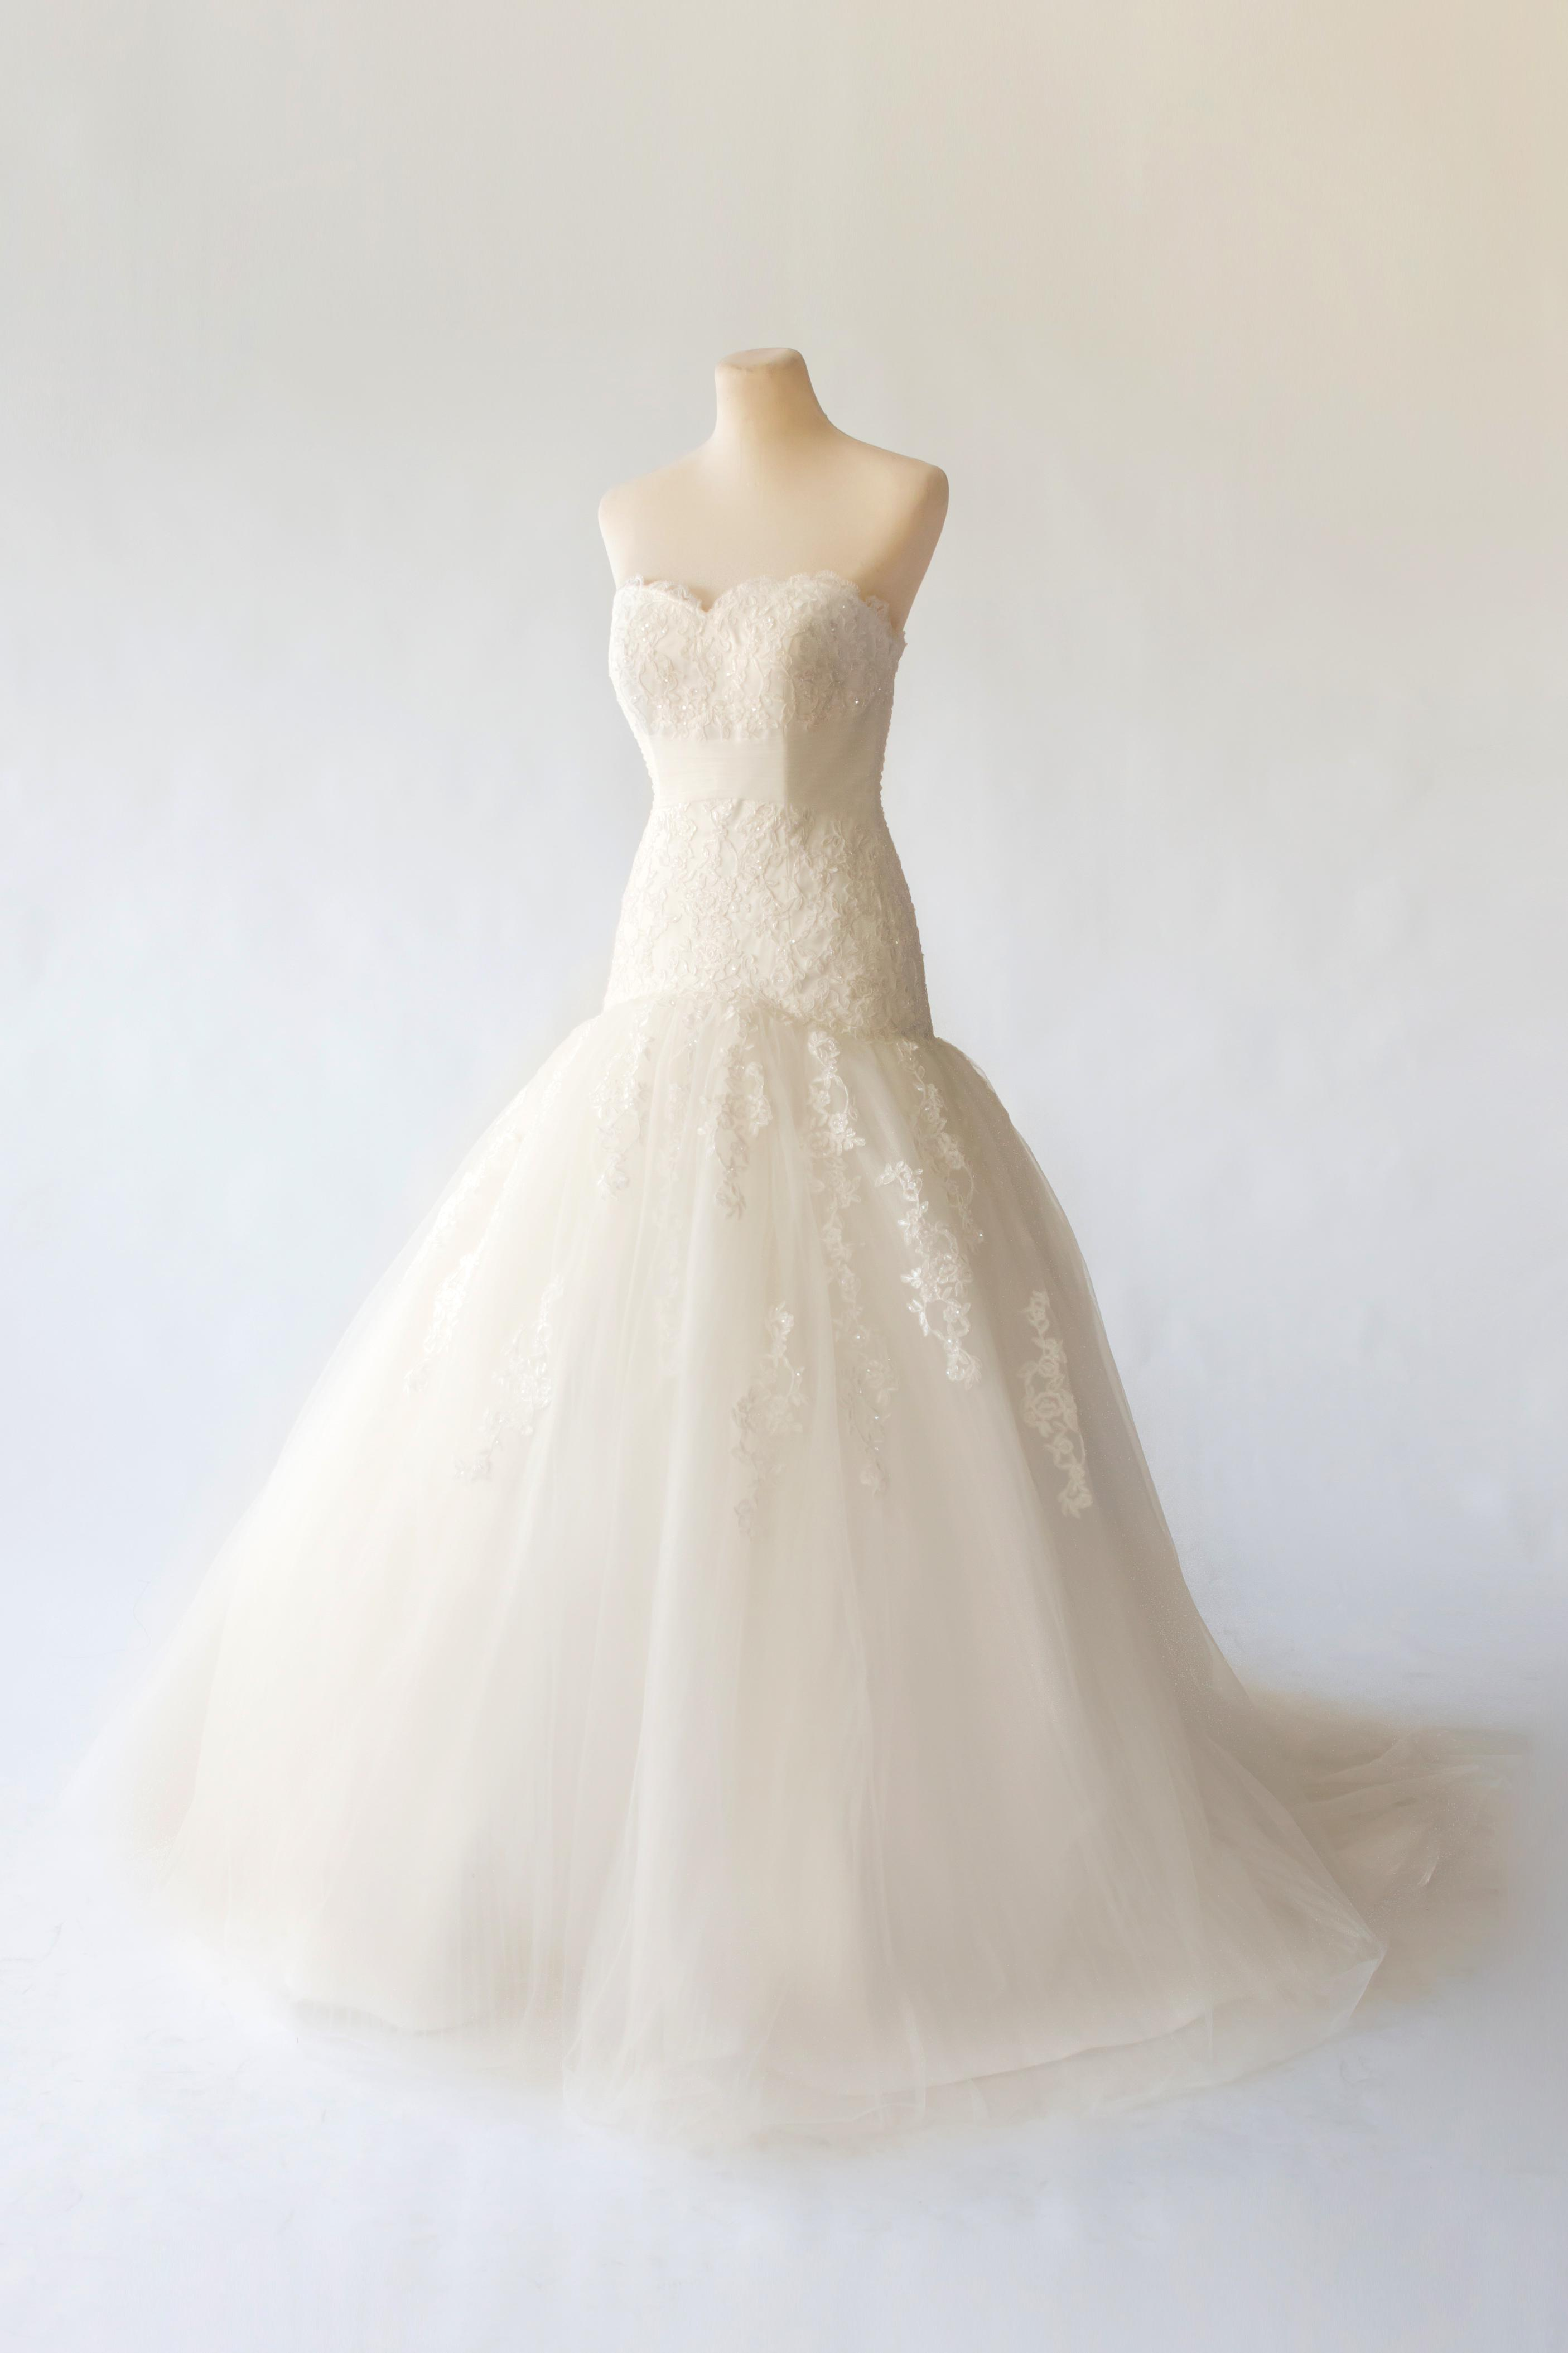 Marguerite | Ivory and White Bridal Store